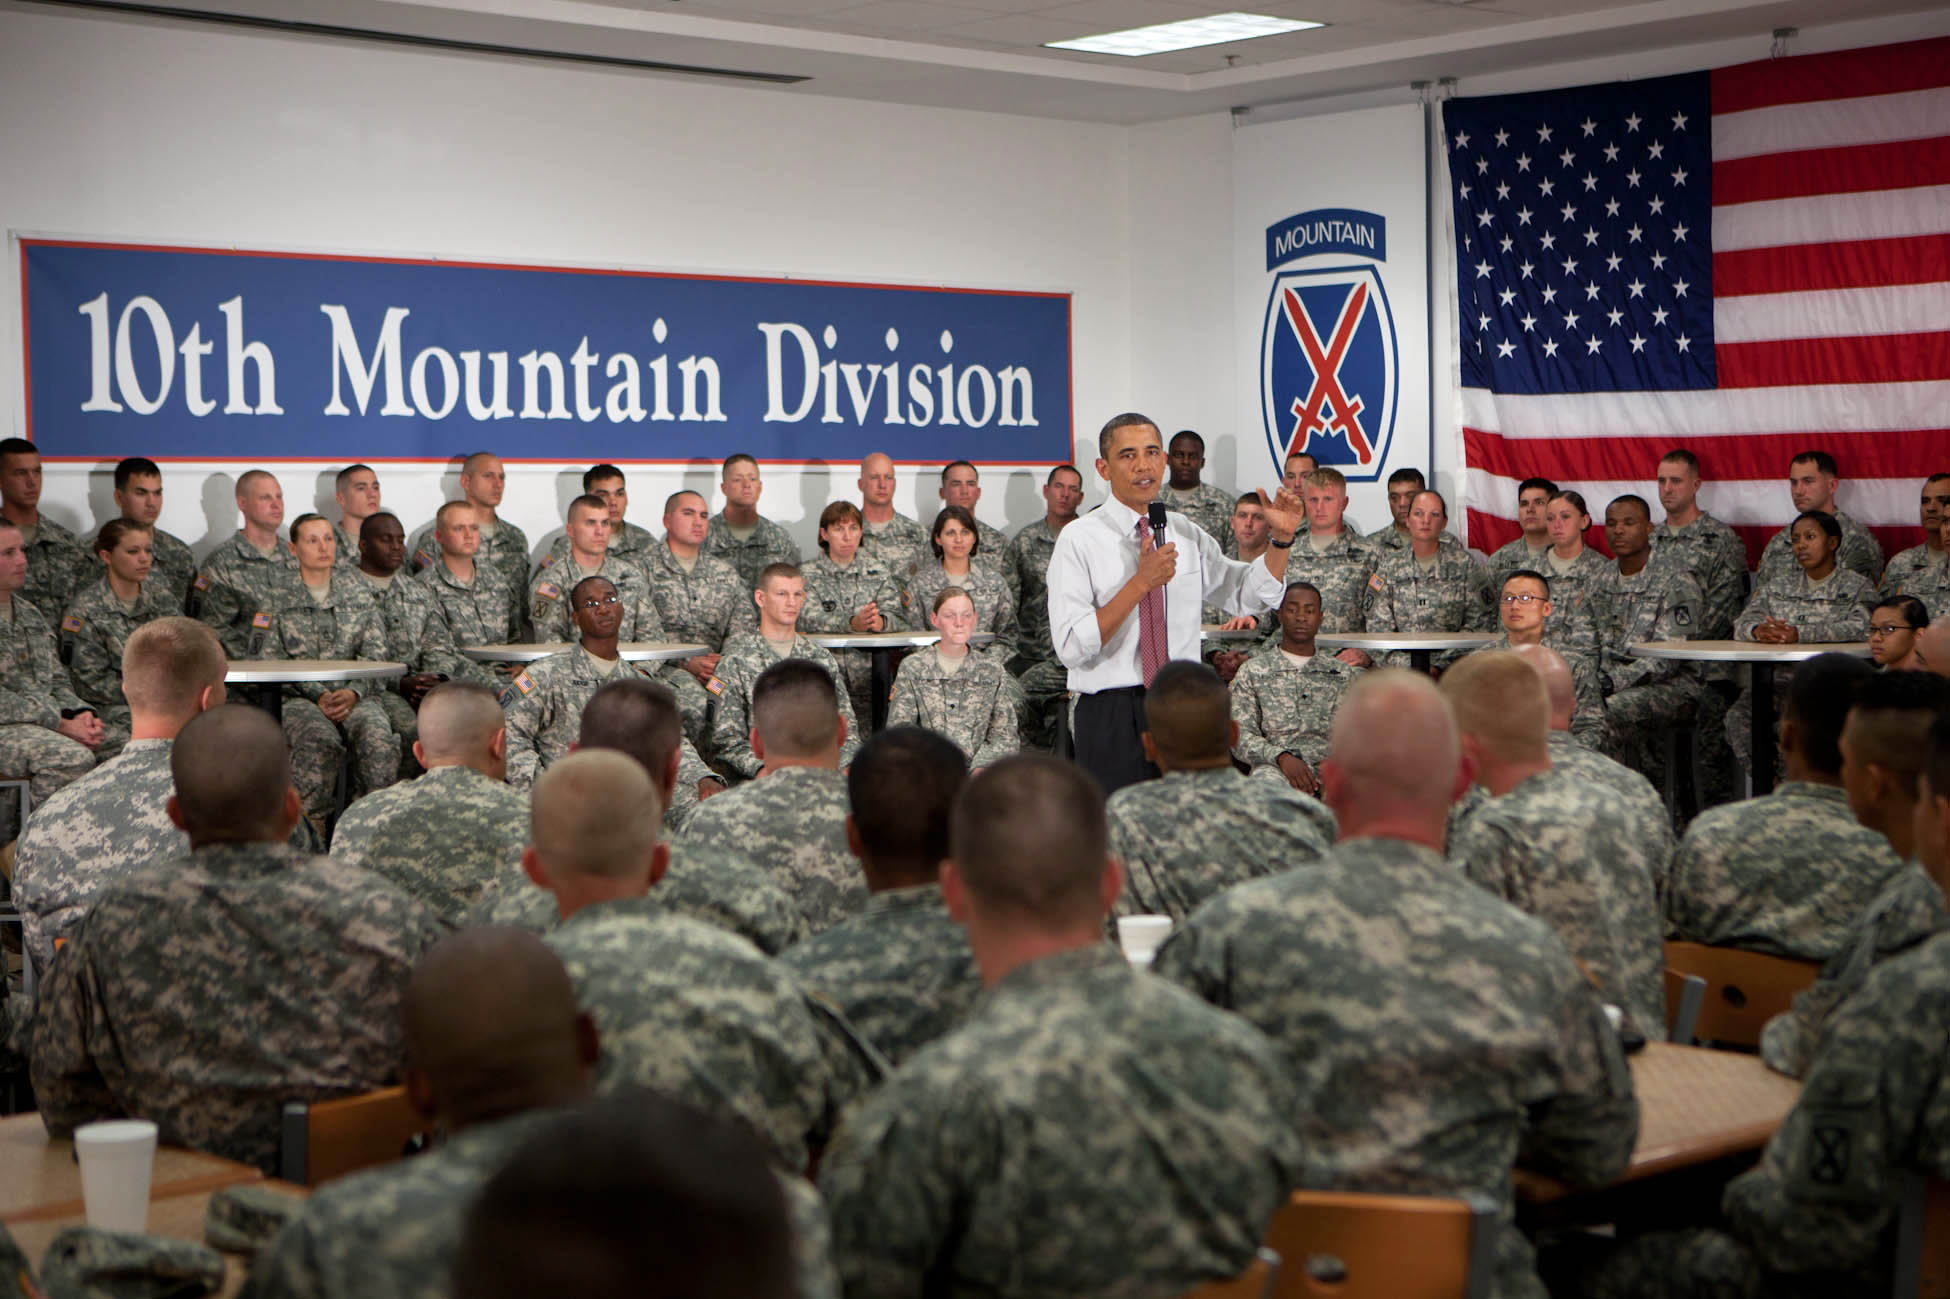 President Barack Obama speaks to soldiers of the 10th Mountain Division